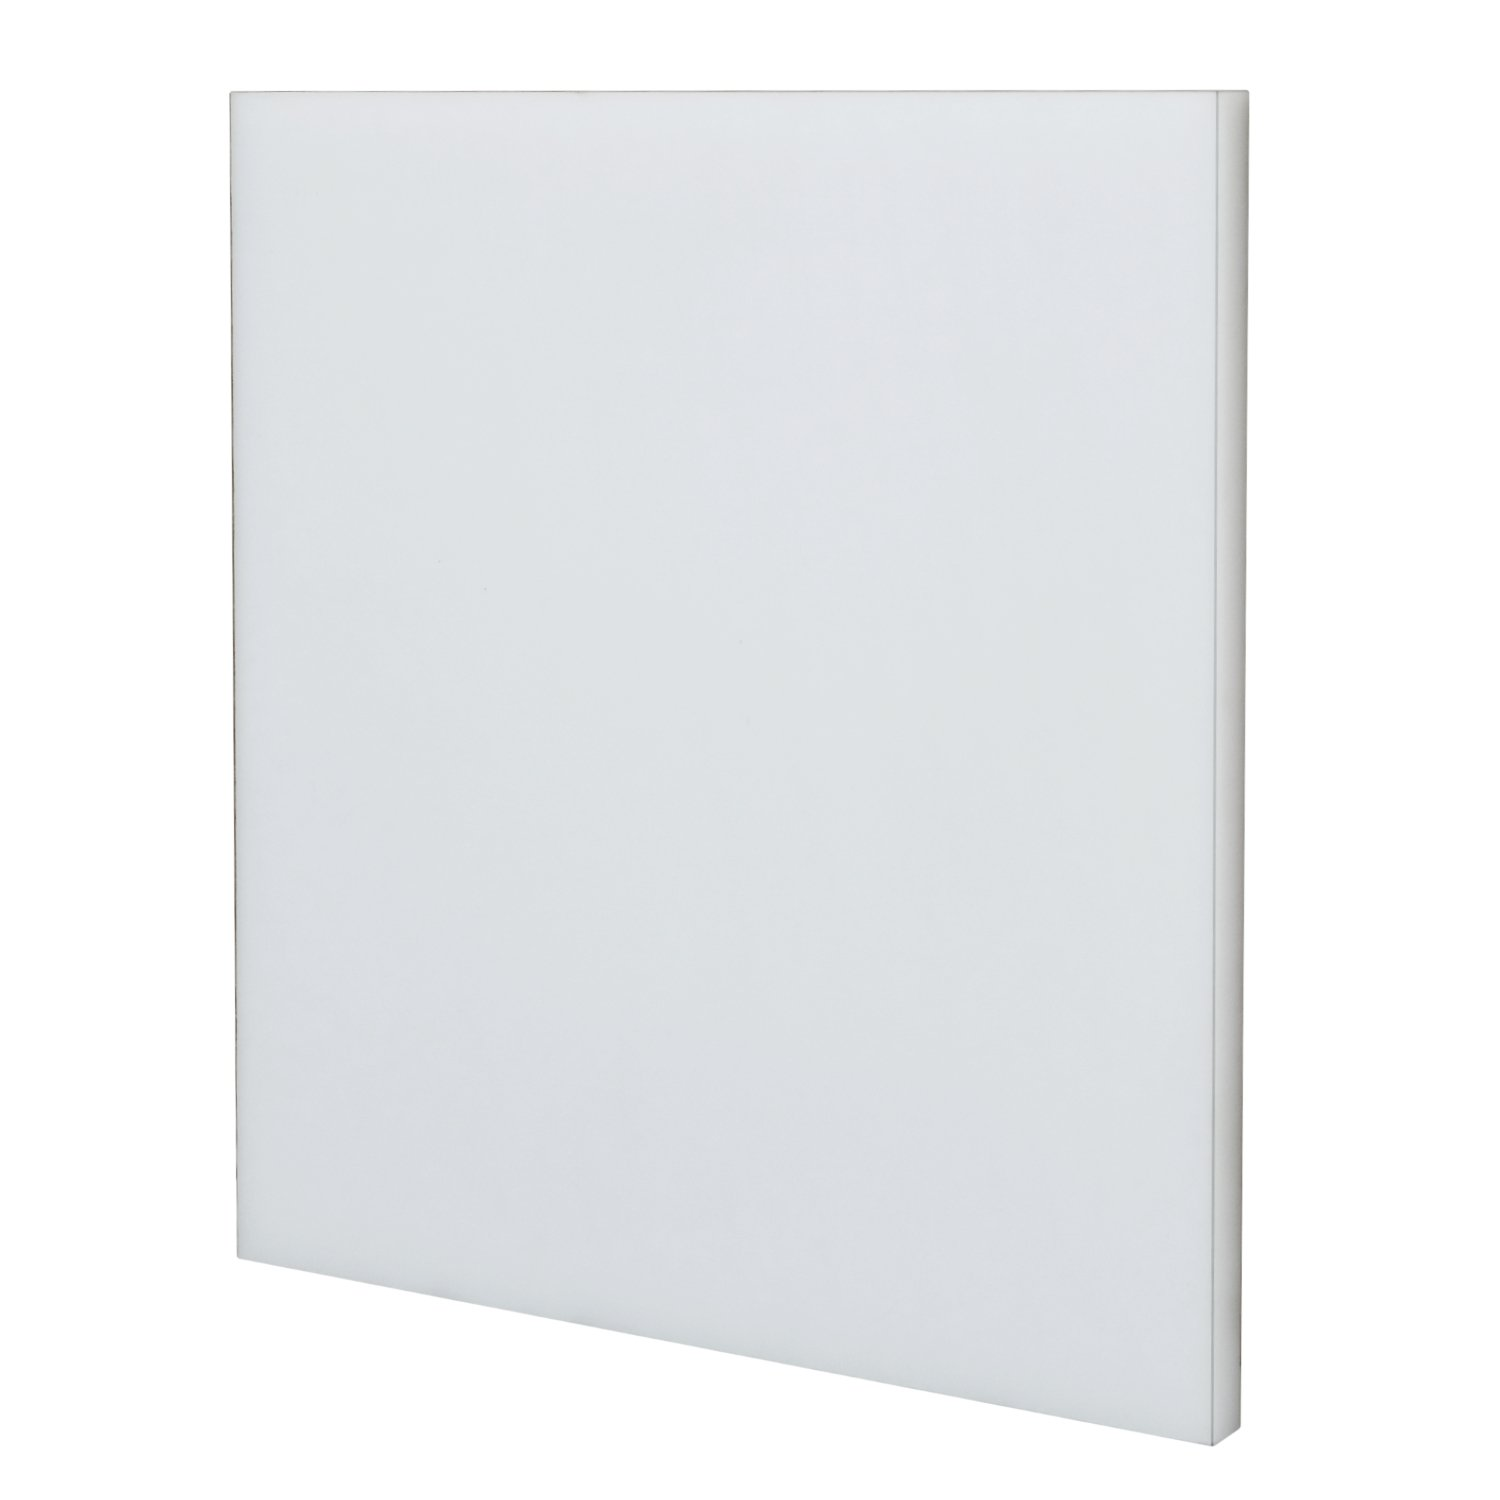 SOURCEONE.ORG Source One Premium UHMW, Ultra High Molecular Weight Polyethylene, Sheets, Available in Every Size and Thickness,Opaque White (1/2 Inch Thick, 12 x 24) by SOURCEONE.ORG